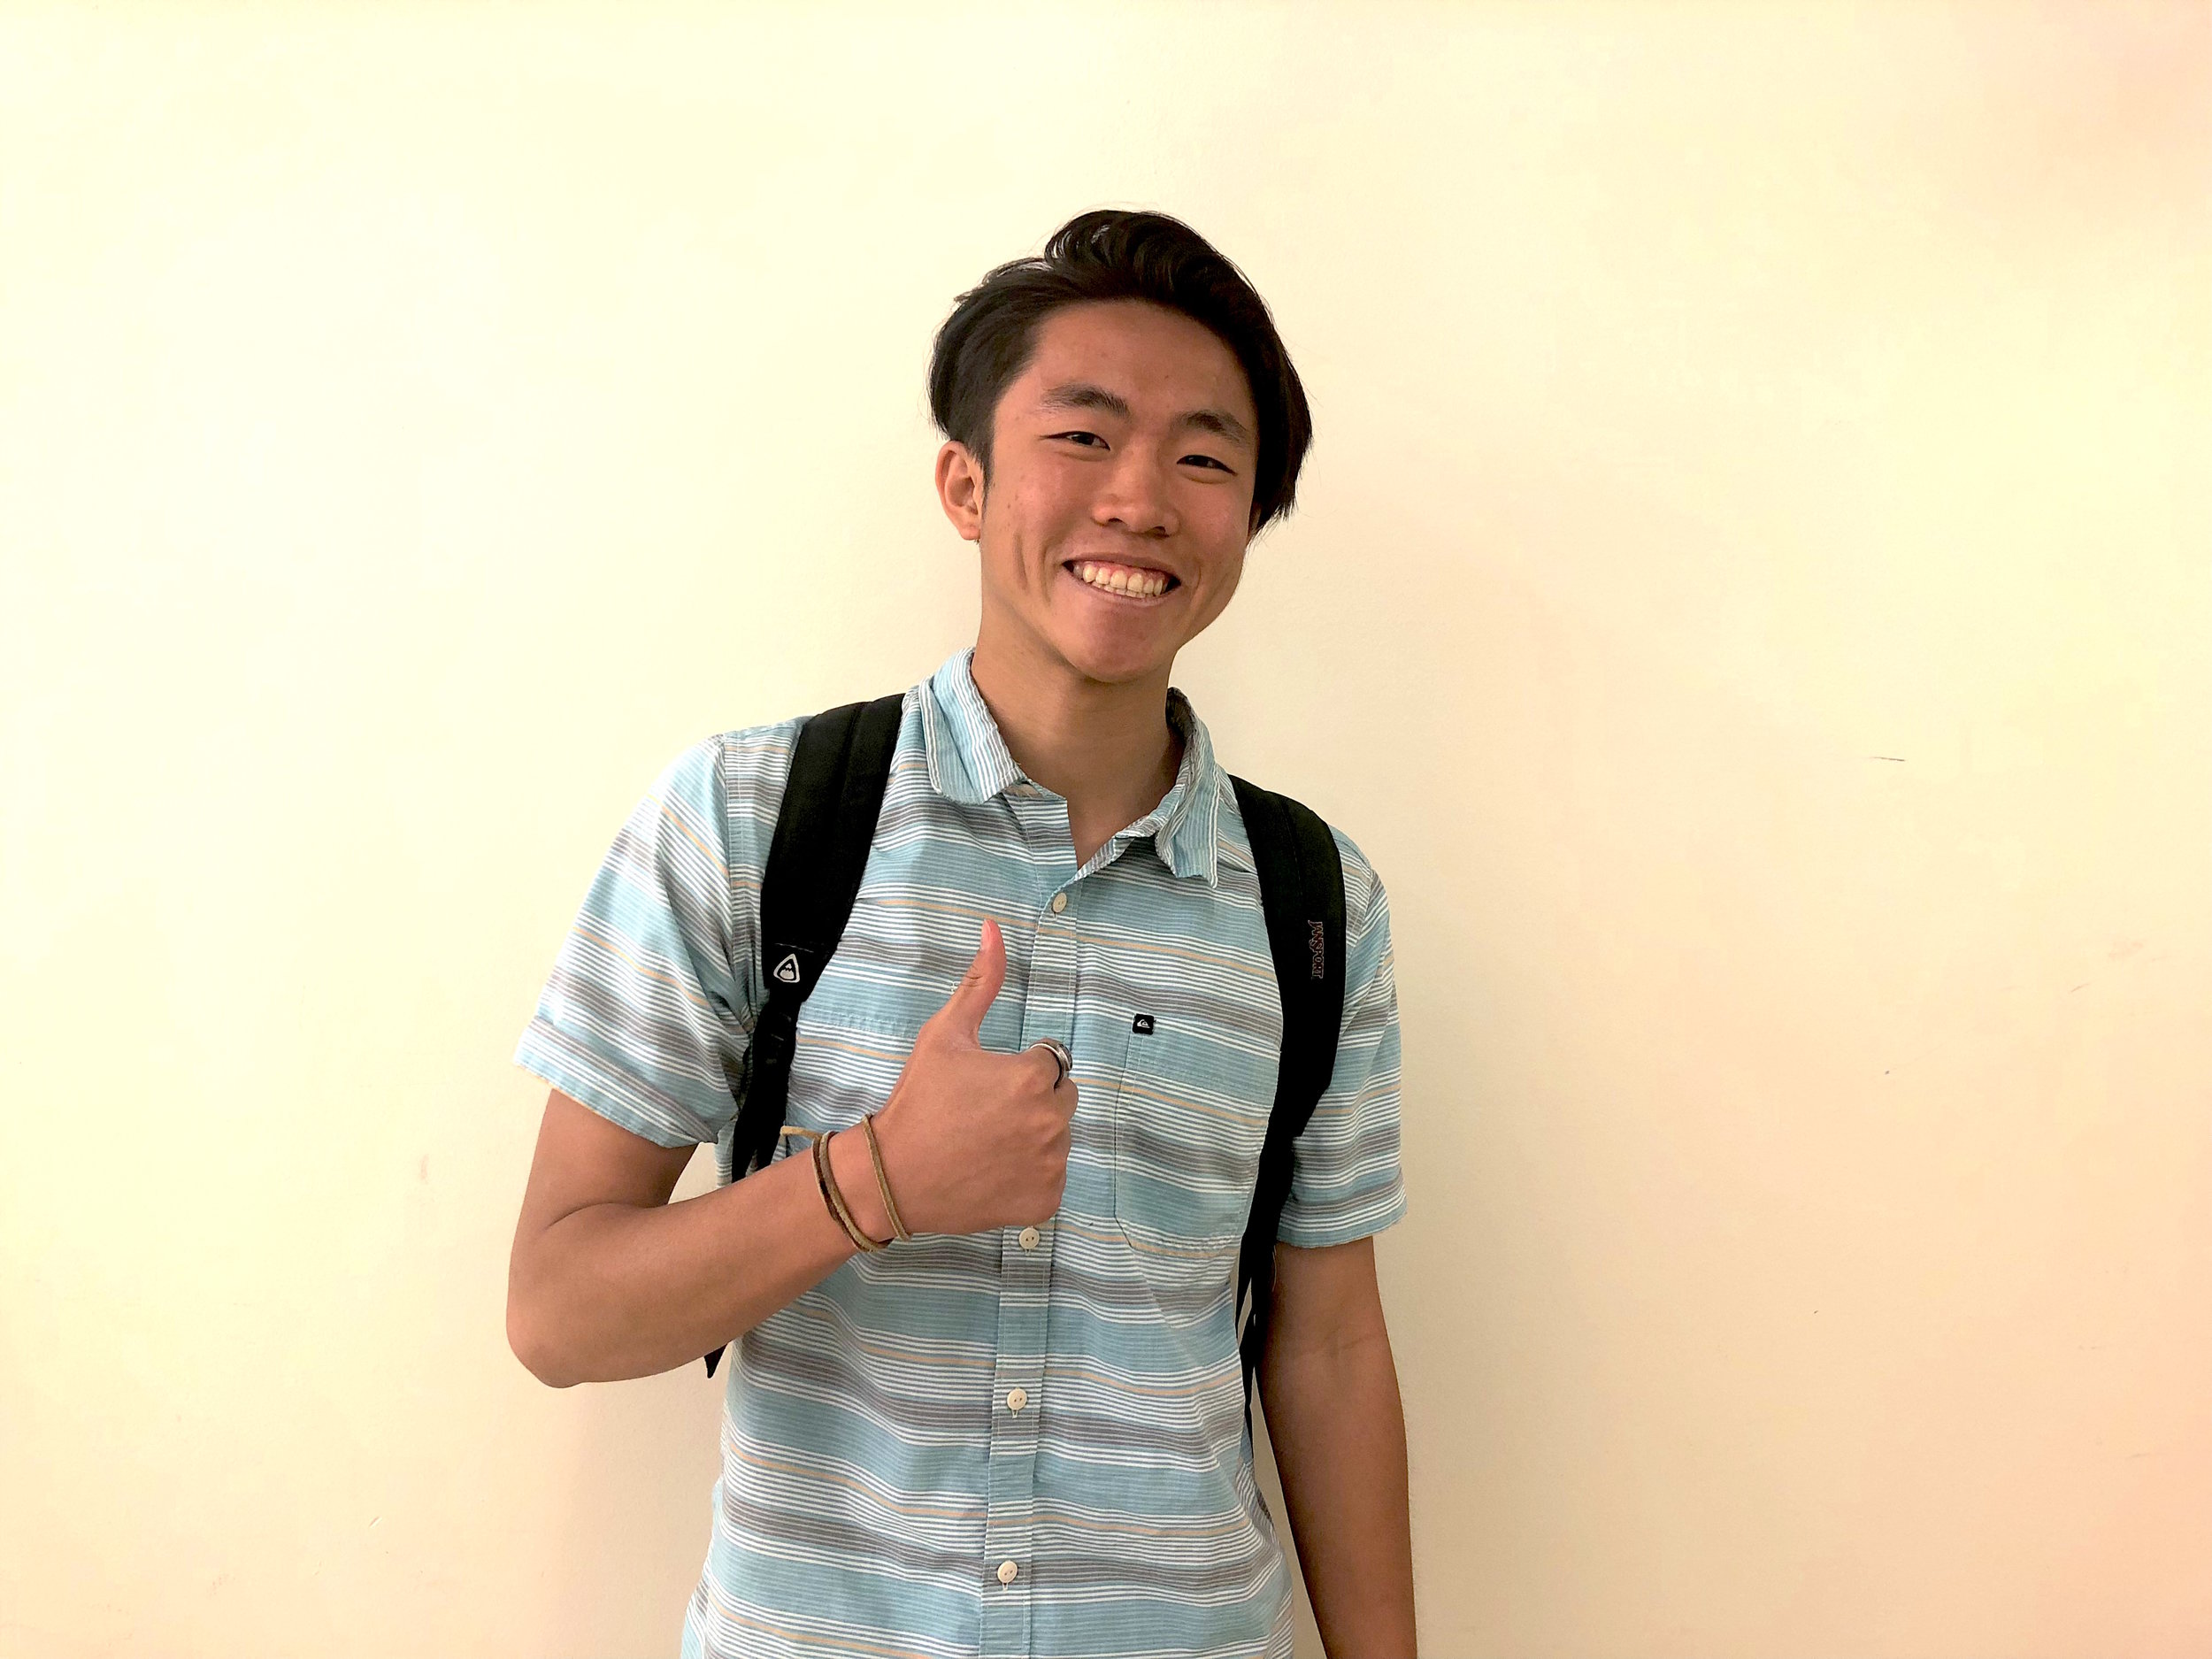 Andrew Nguyen gives a thumbs up to the camera. (Photo by Sasha Nasir)